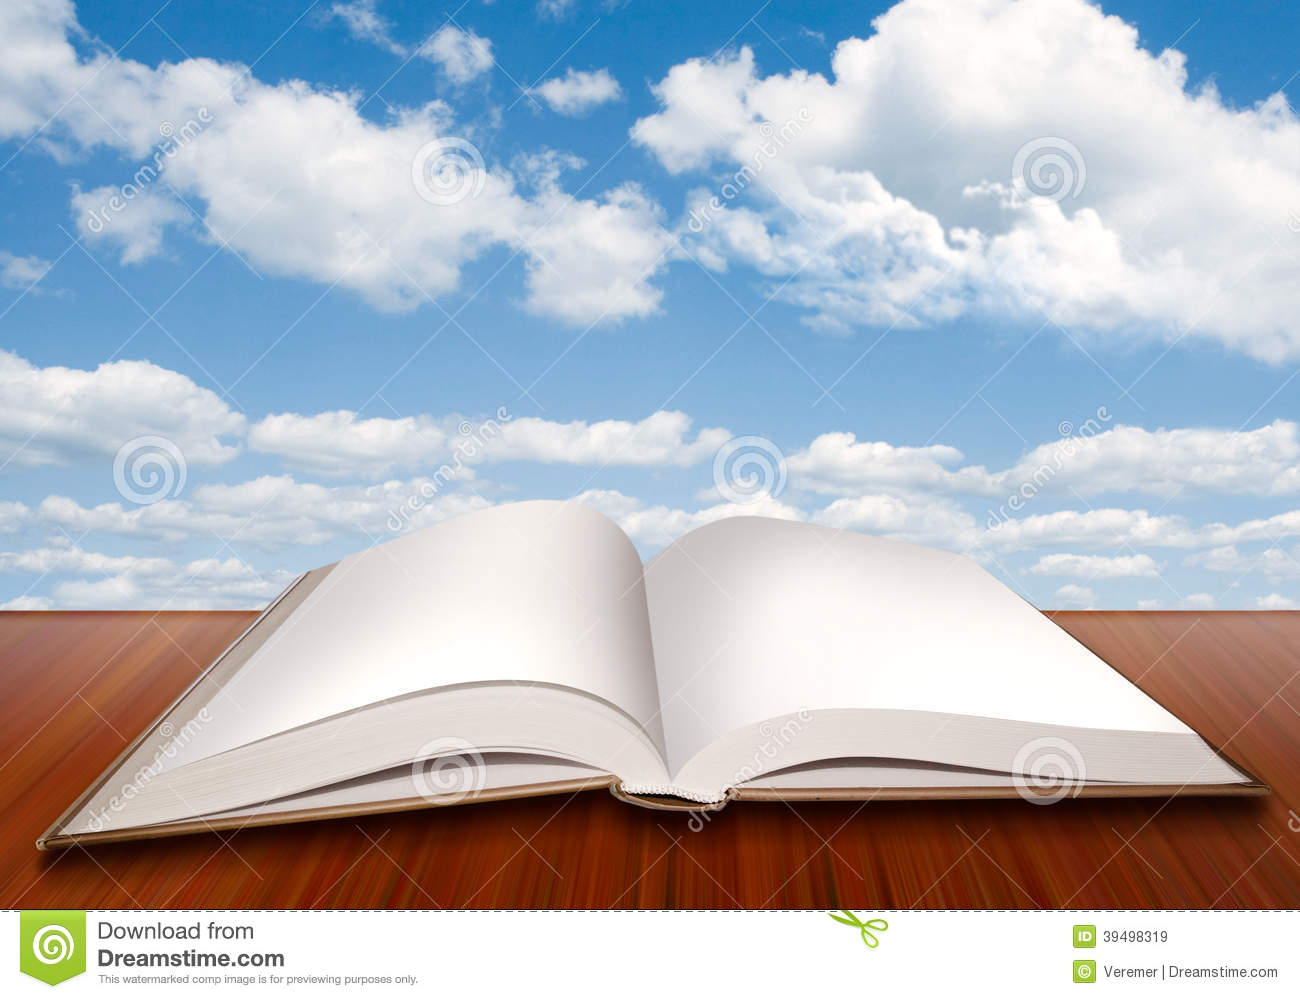 Open Empty Book With Blank Pages And Blue Sky Stock Illustration  Image 39498319